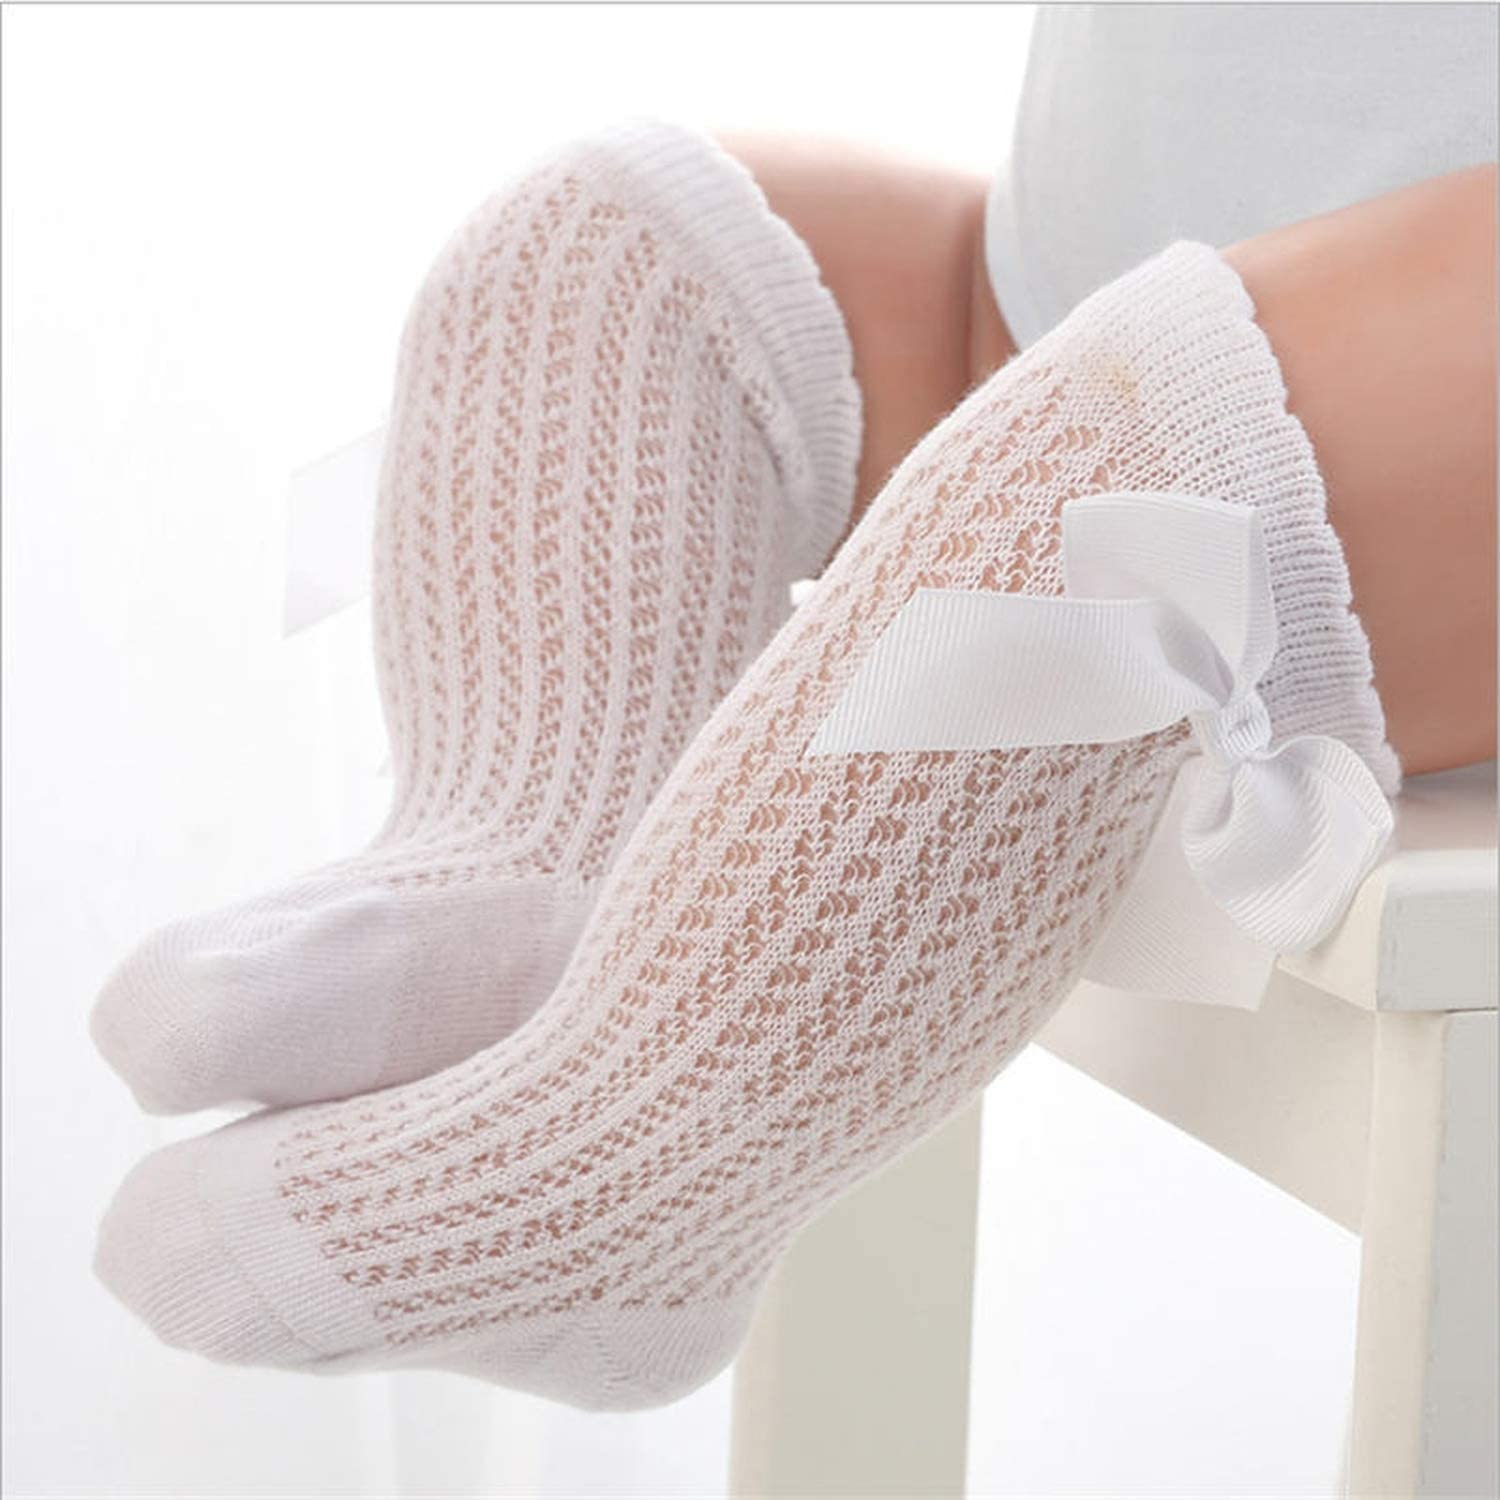 baby girls socks summer mesh socks with bow over knee high longprincess infant cotton,white beige yellow,24M